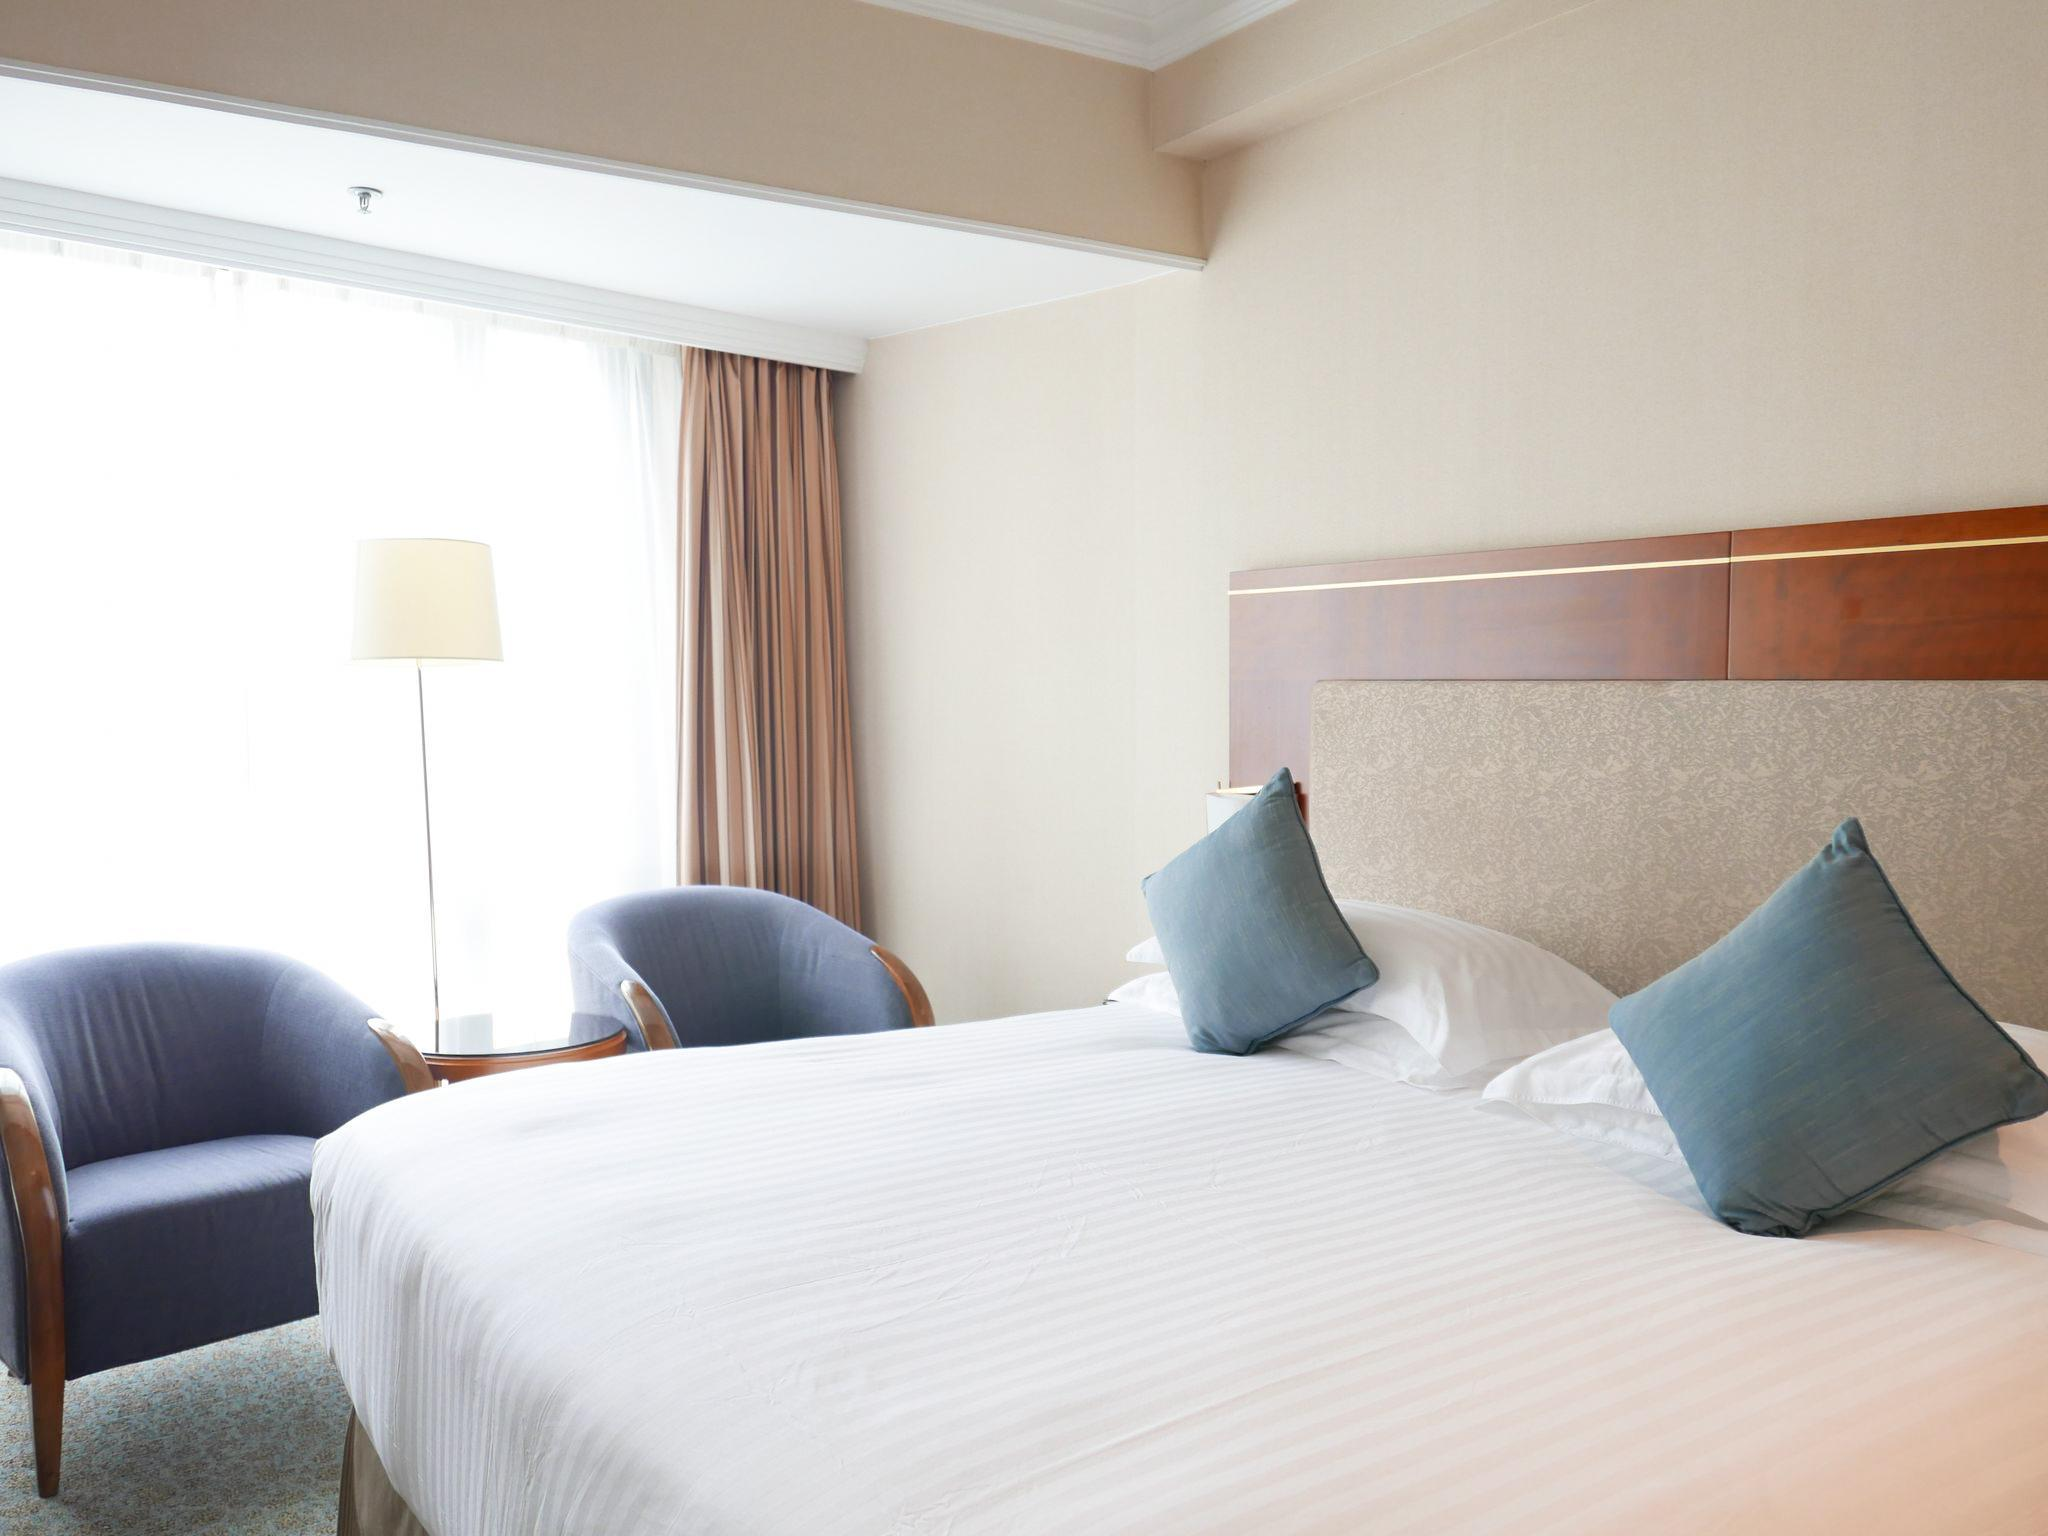 ascot asian singles Ascot is a wealthy neighbourhood, located close to the brisbane river between the airport and the city the apartment is located amongst a wide range of shops, cafes and restaurants offering a diverse options of food and dining styles.